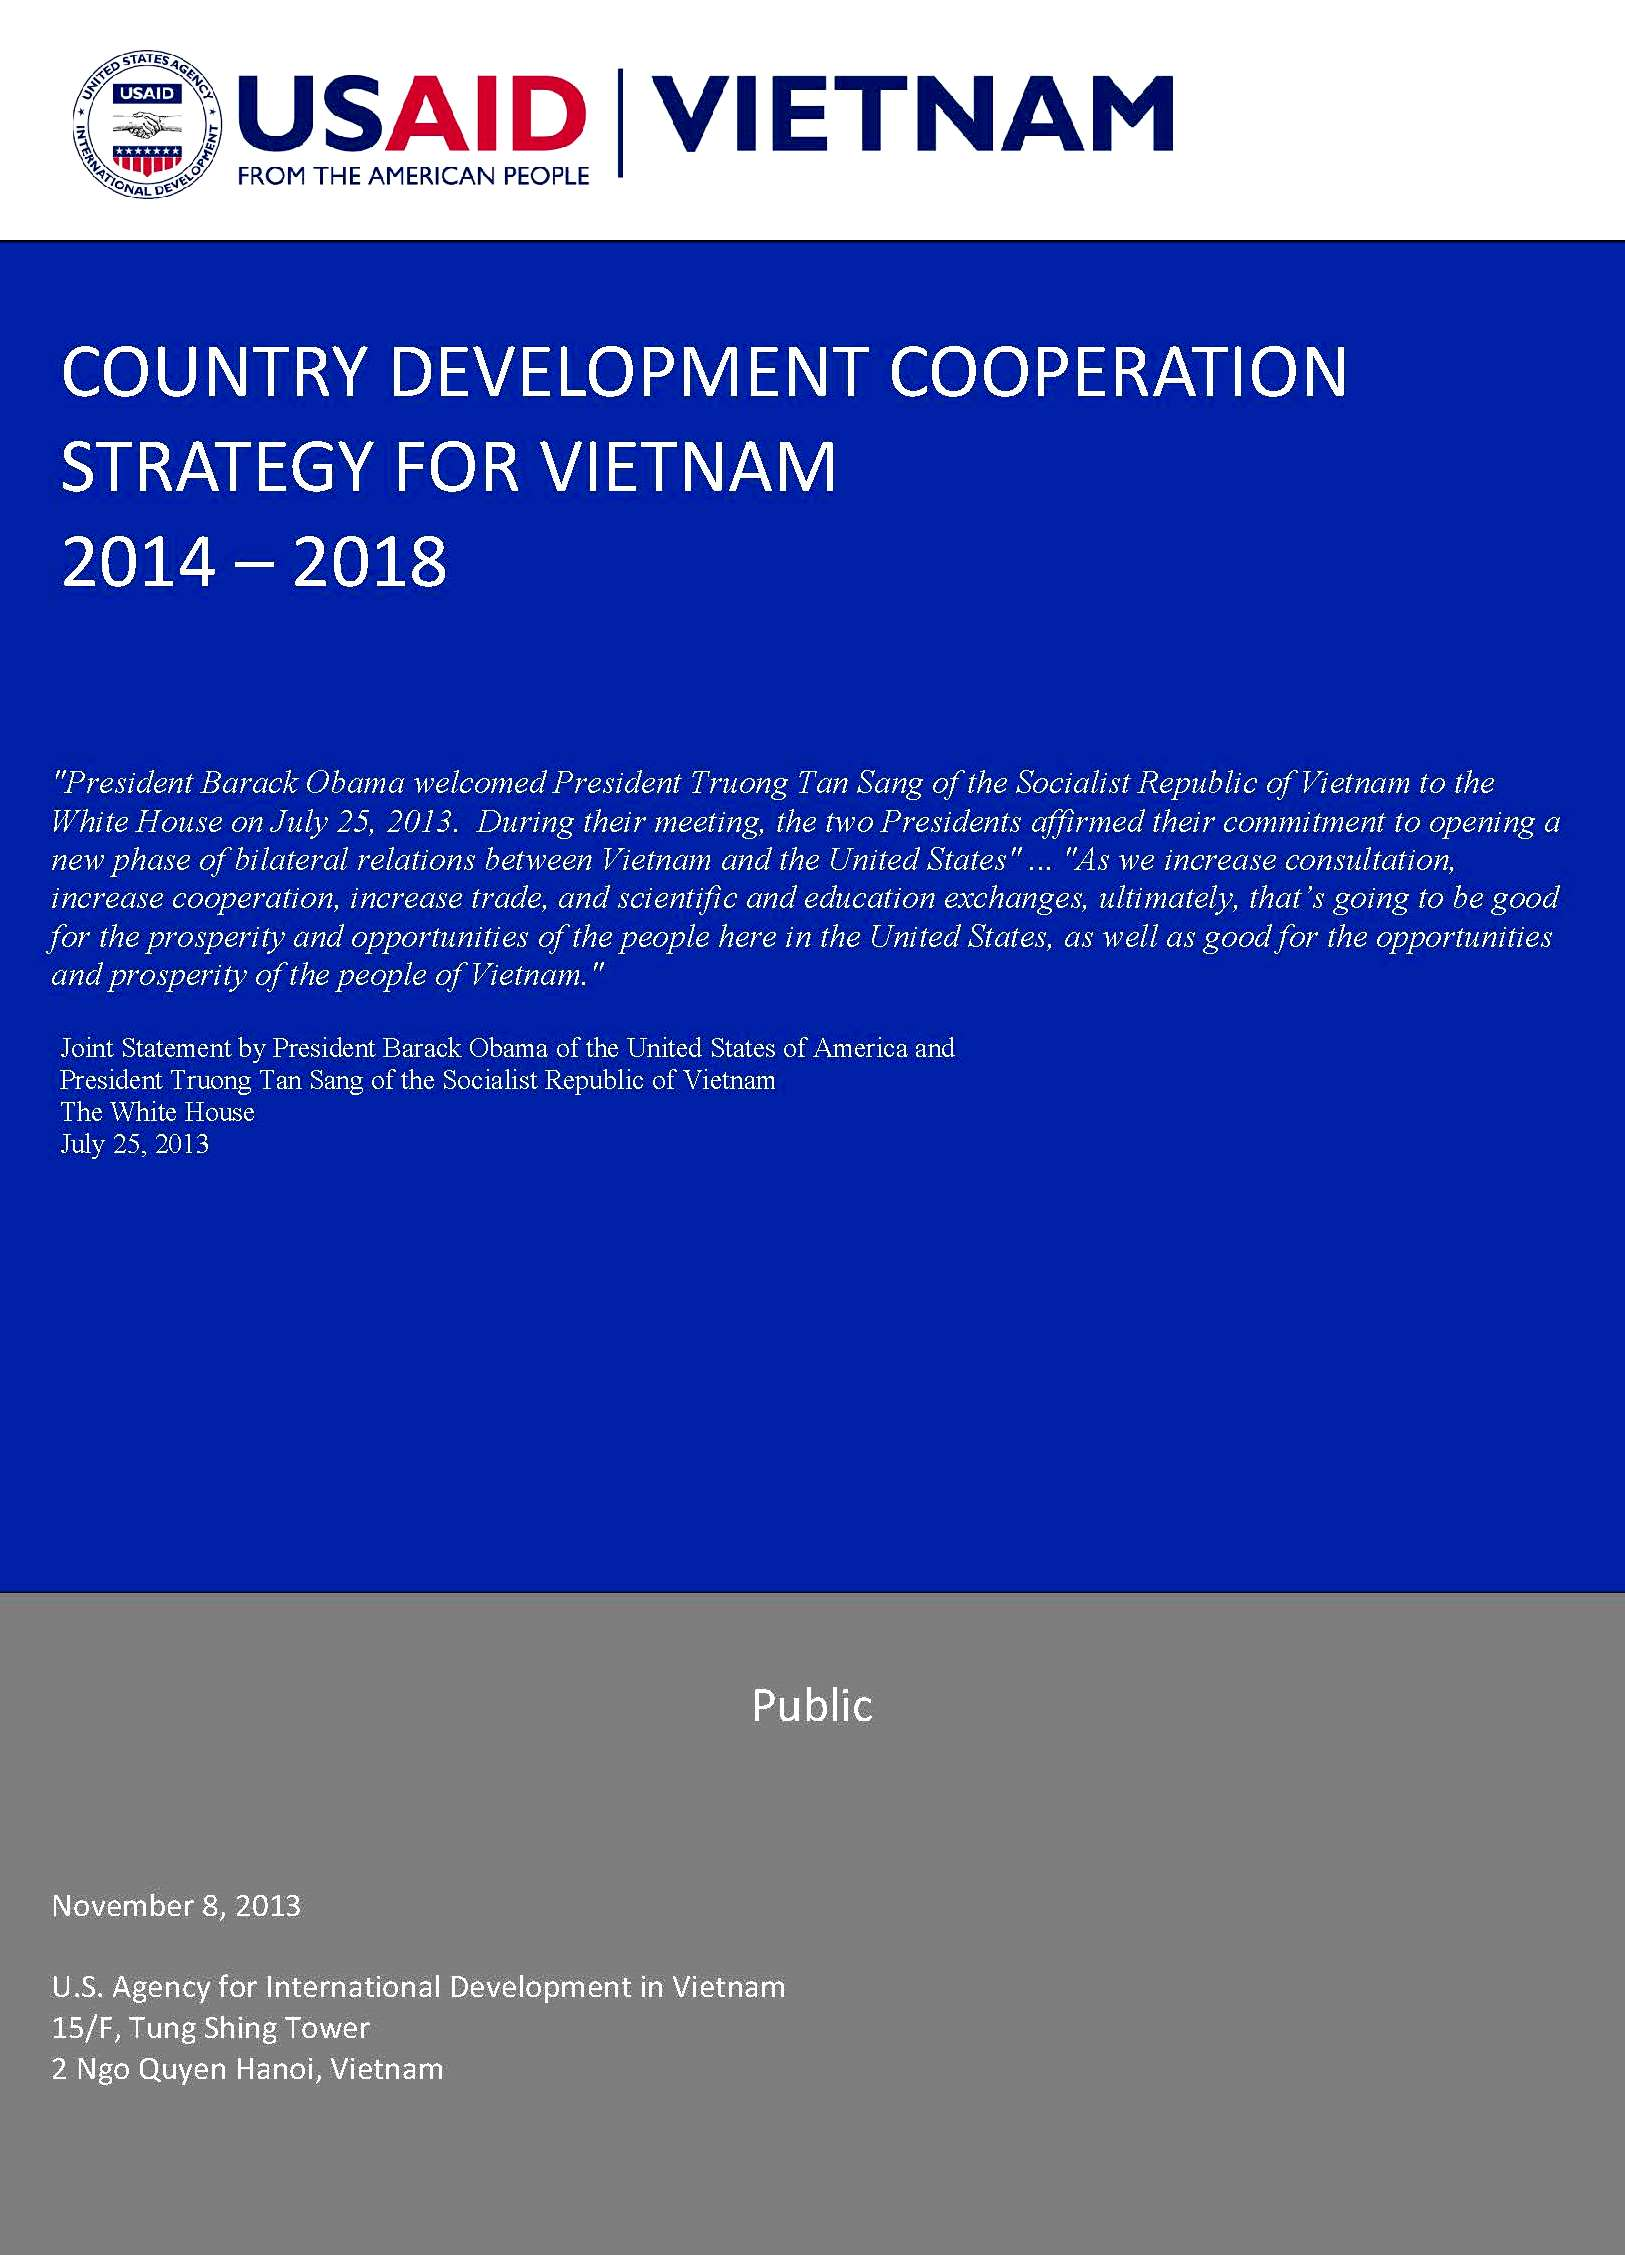 Country Development Cooperation Strategy for Vietnam (2014 - 2018)